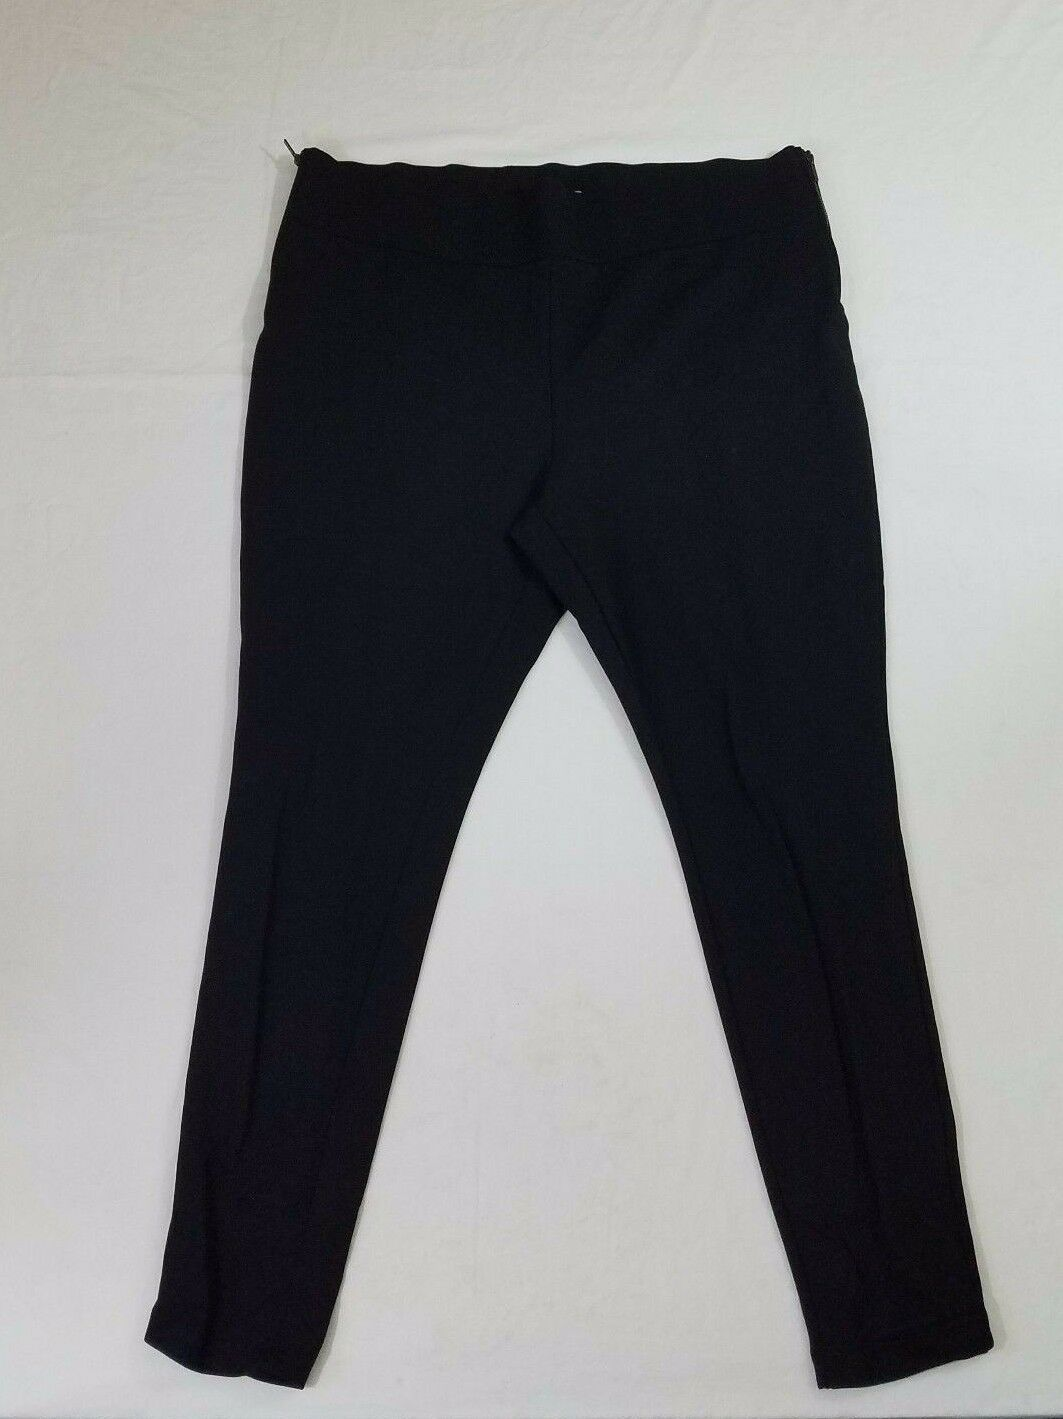 Old Navy Womens Size XXL Dress Pants Black Stretch Zipper Opening Both Sides